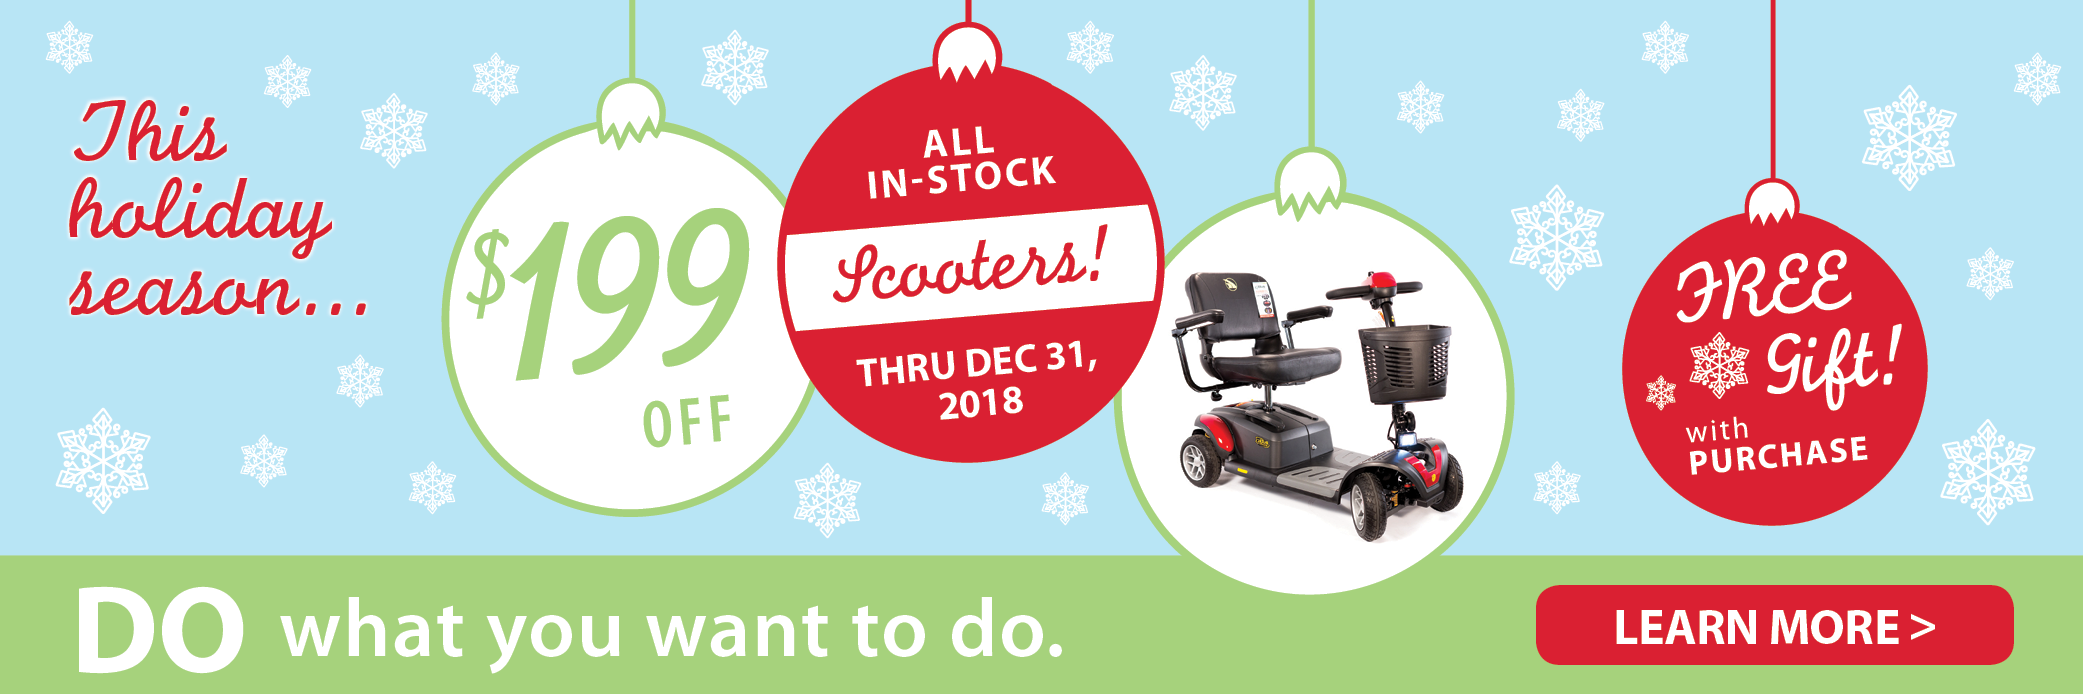 $199 off all in-stock scooters through Dec. 31, 2018!